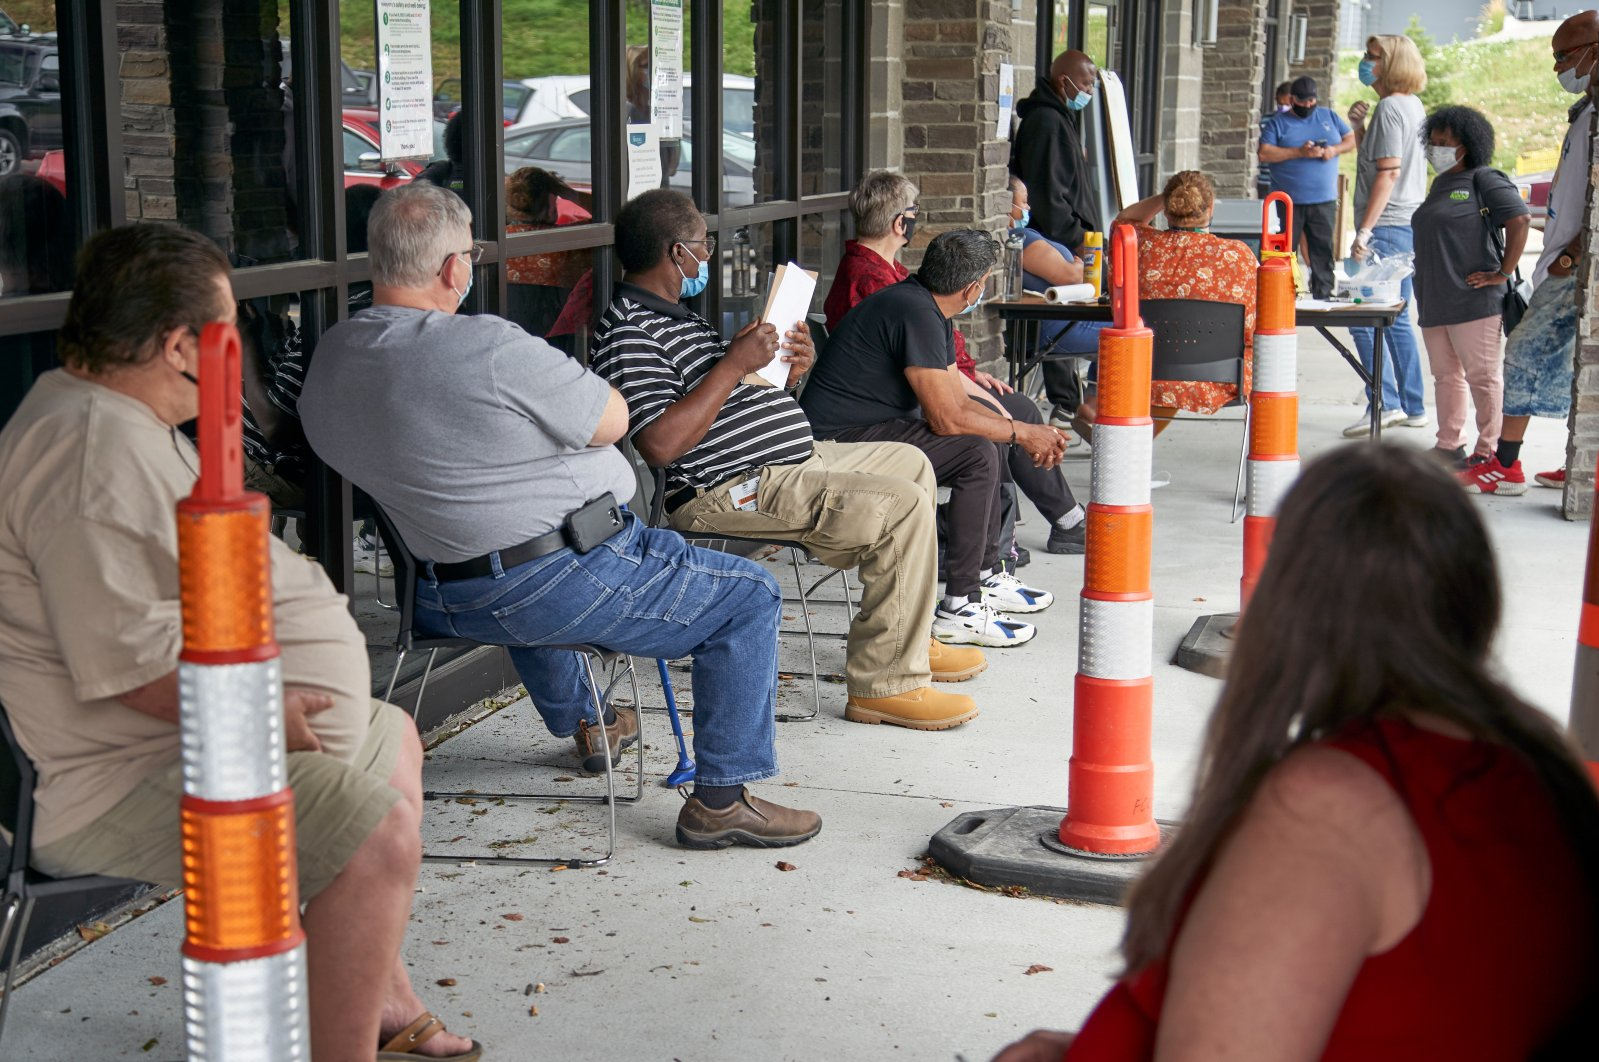 Job seekers exercise social distancing as they wait to be called into the Heartland Workforce Solutions office in Omaha, Nebraska, U.S., July 15, 2020. (AP Photo)